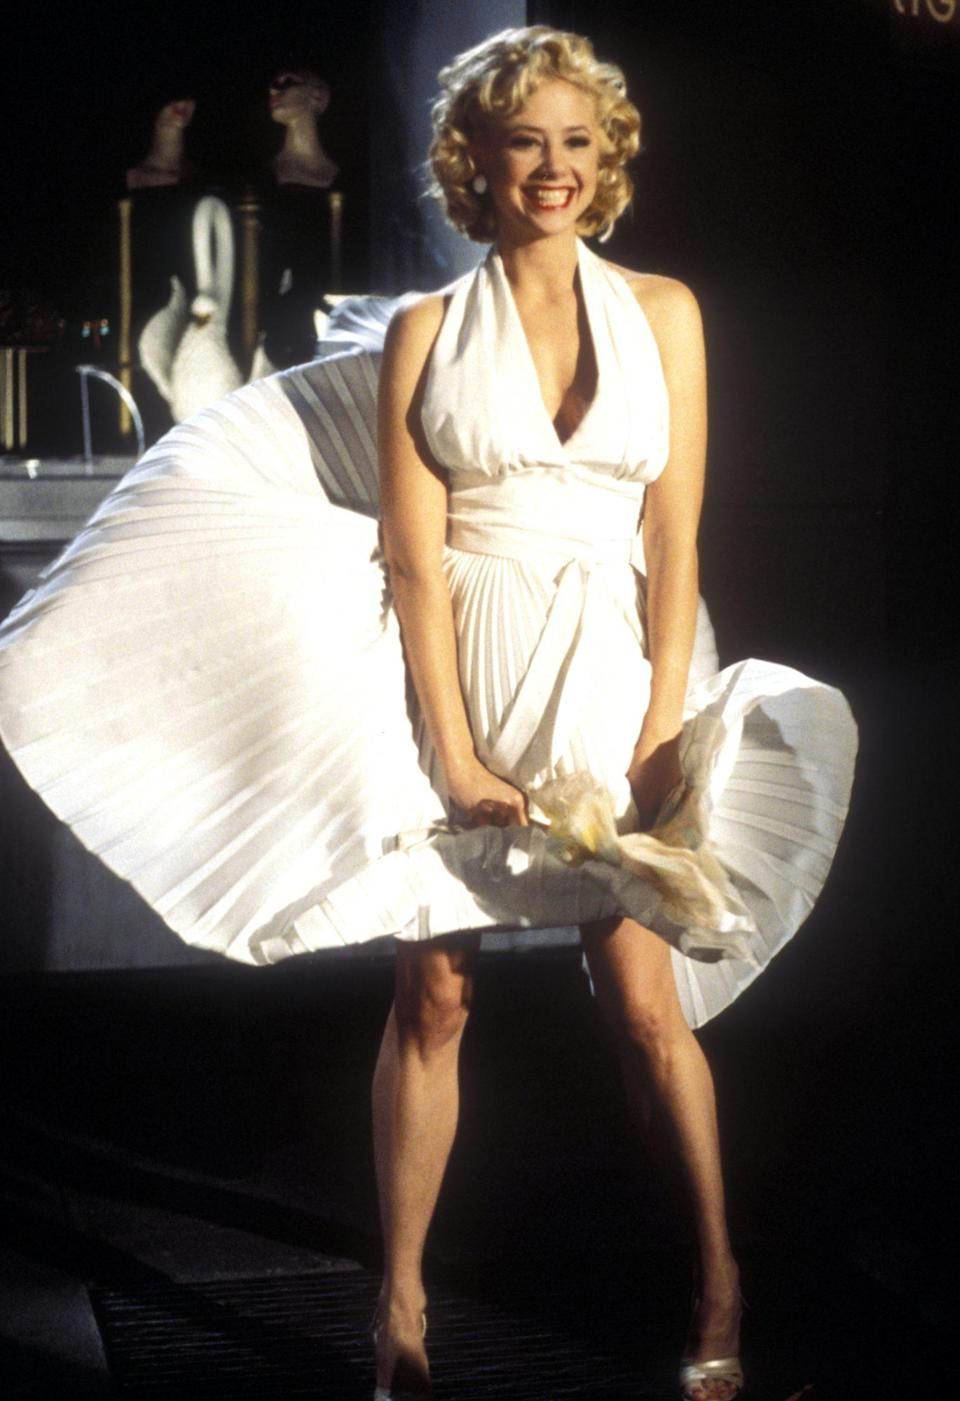 <p>Opposite Judd, Sorvino also starred as Monroe in <em>Norma Jean and Marilyn,</em> channeling the famous actress after she turned herself into a superstar. </p>